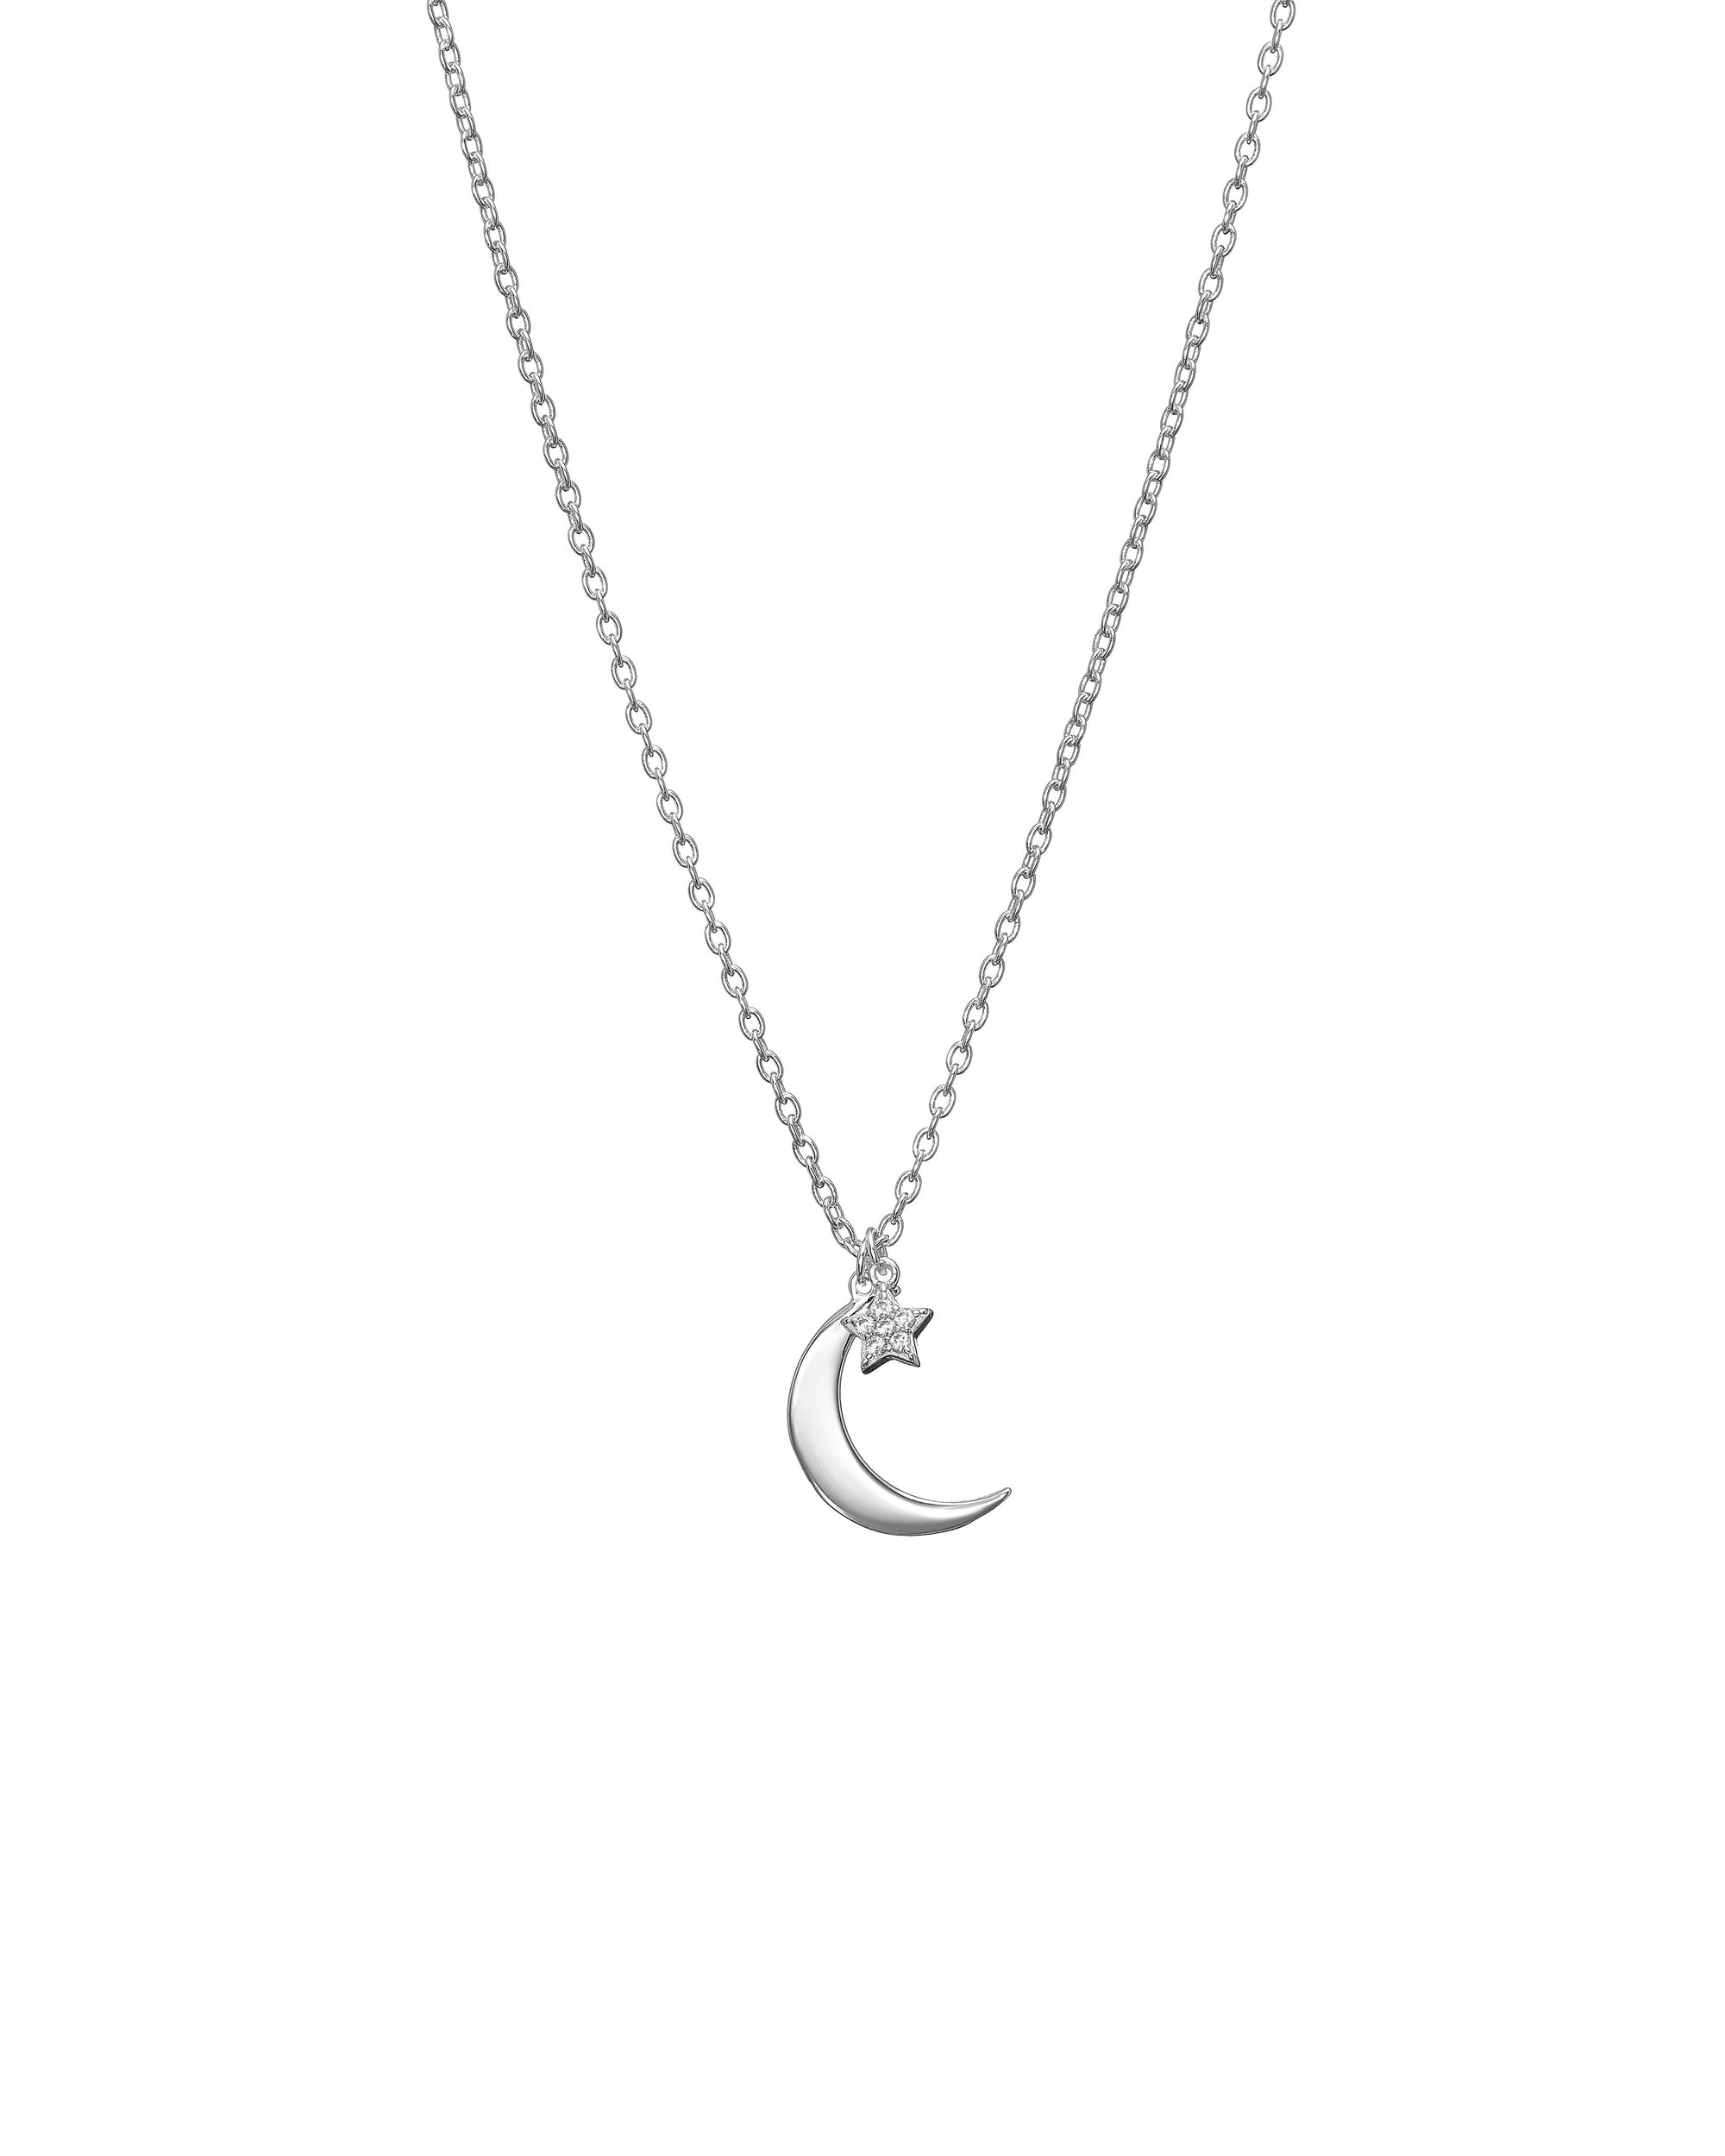 Silver Crescent Moon Star Pendant Necklace